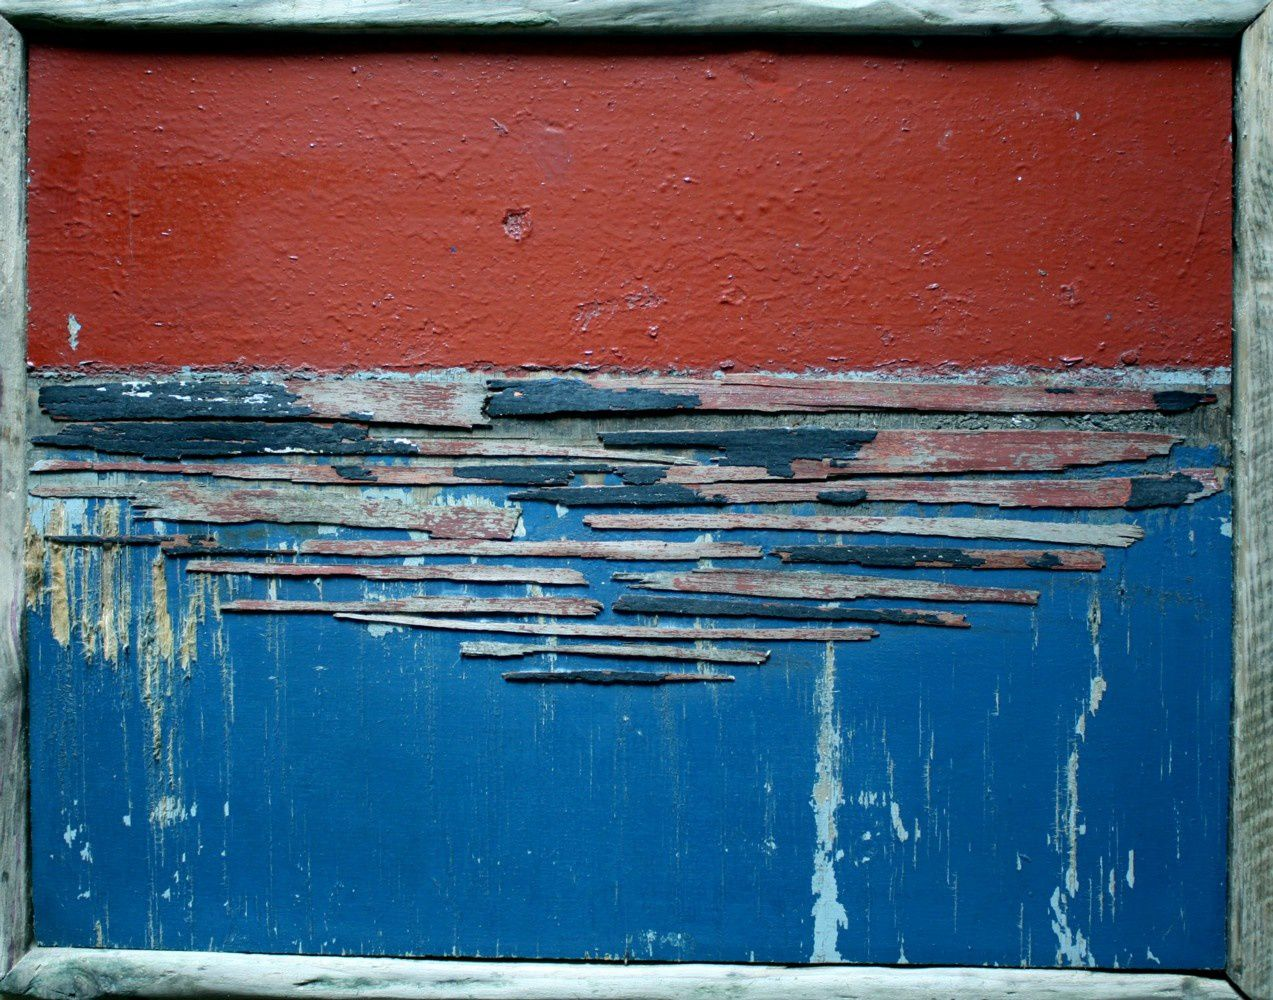 Channel n°39 - Red sky and blue channel - assemblage mixte © Pascal Levaillant 2016